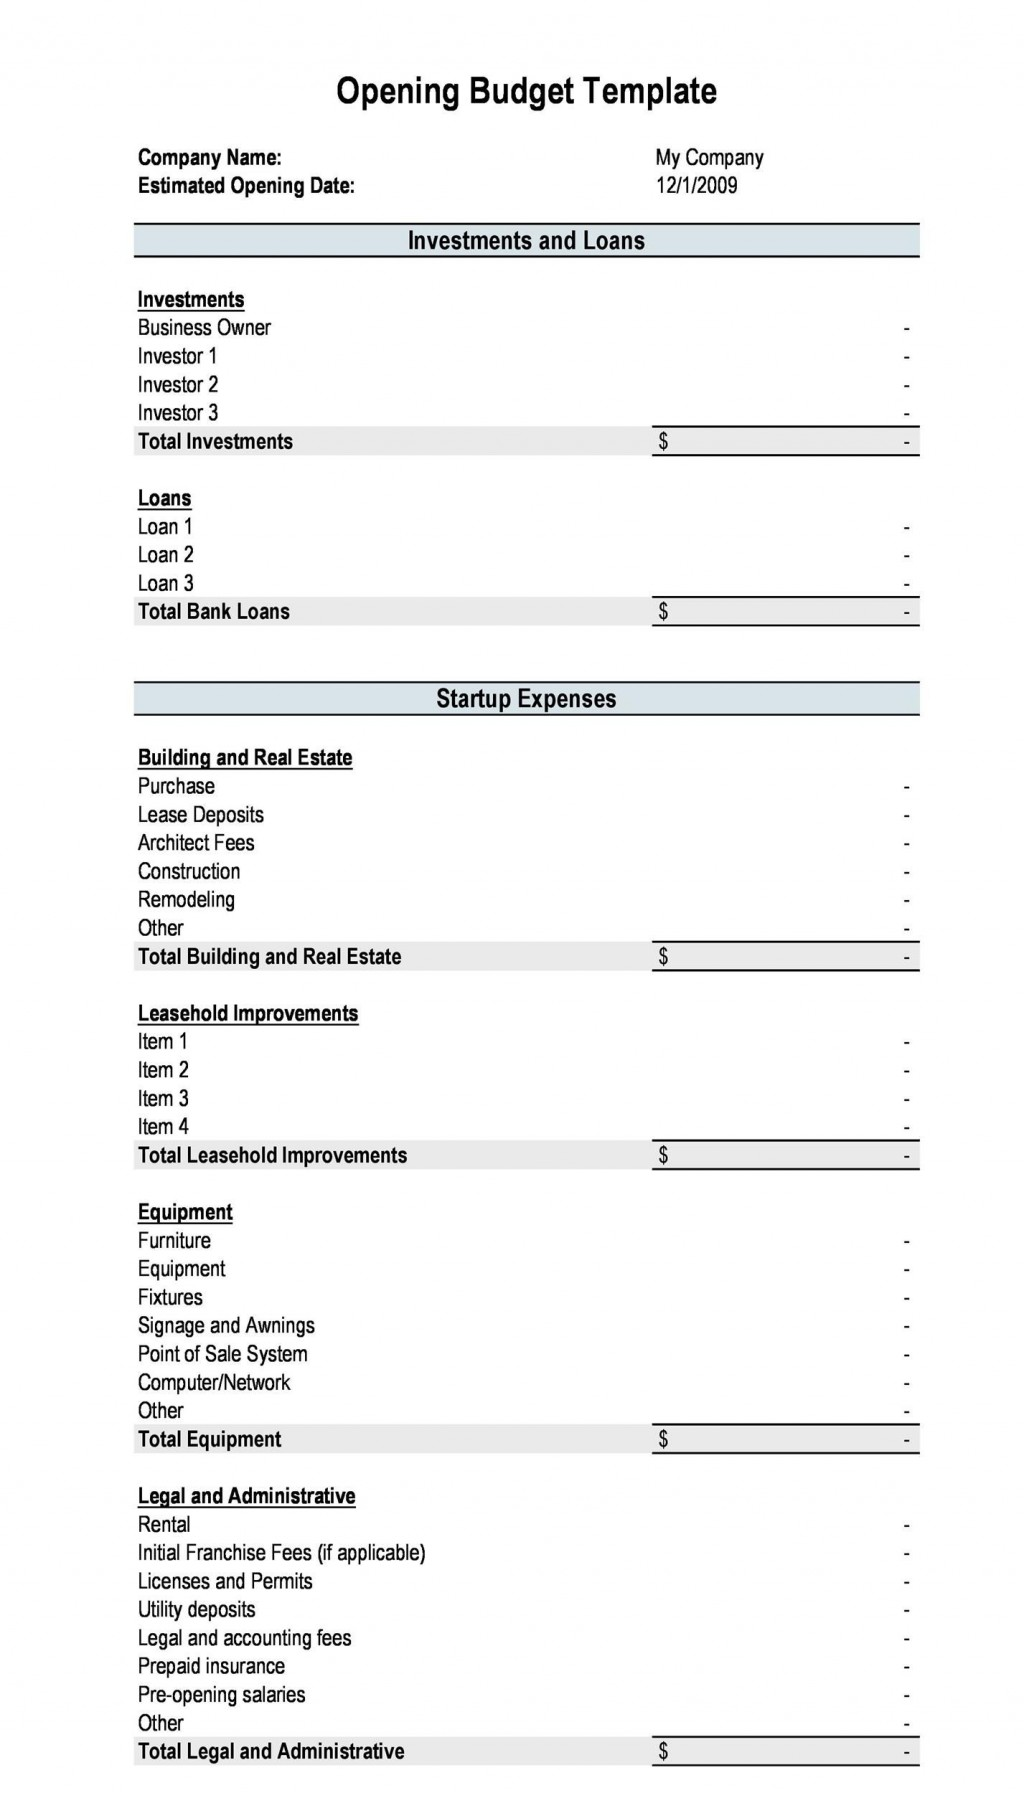 009 Marvelou Best Home Renovation Budget Template Excel Free Example Large